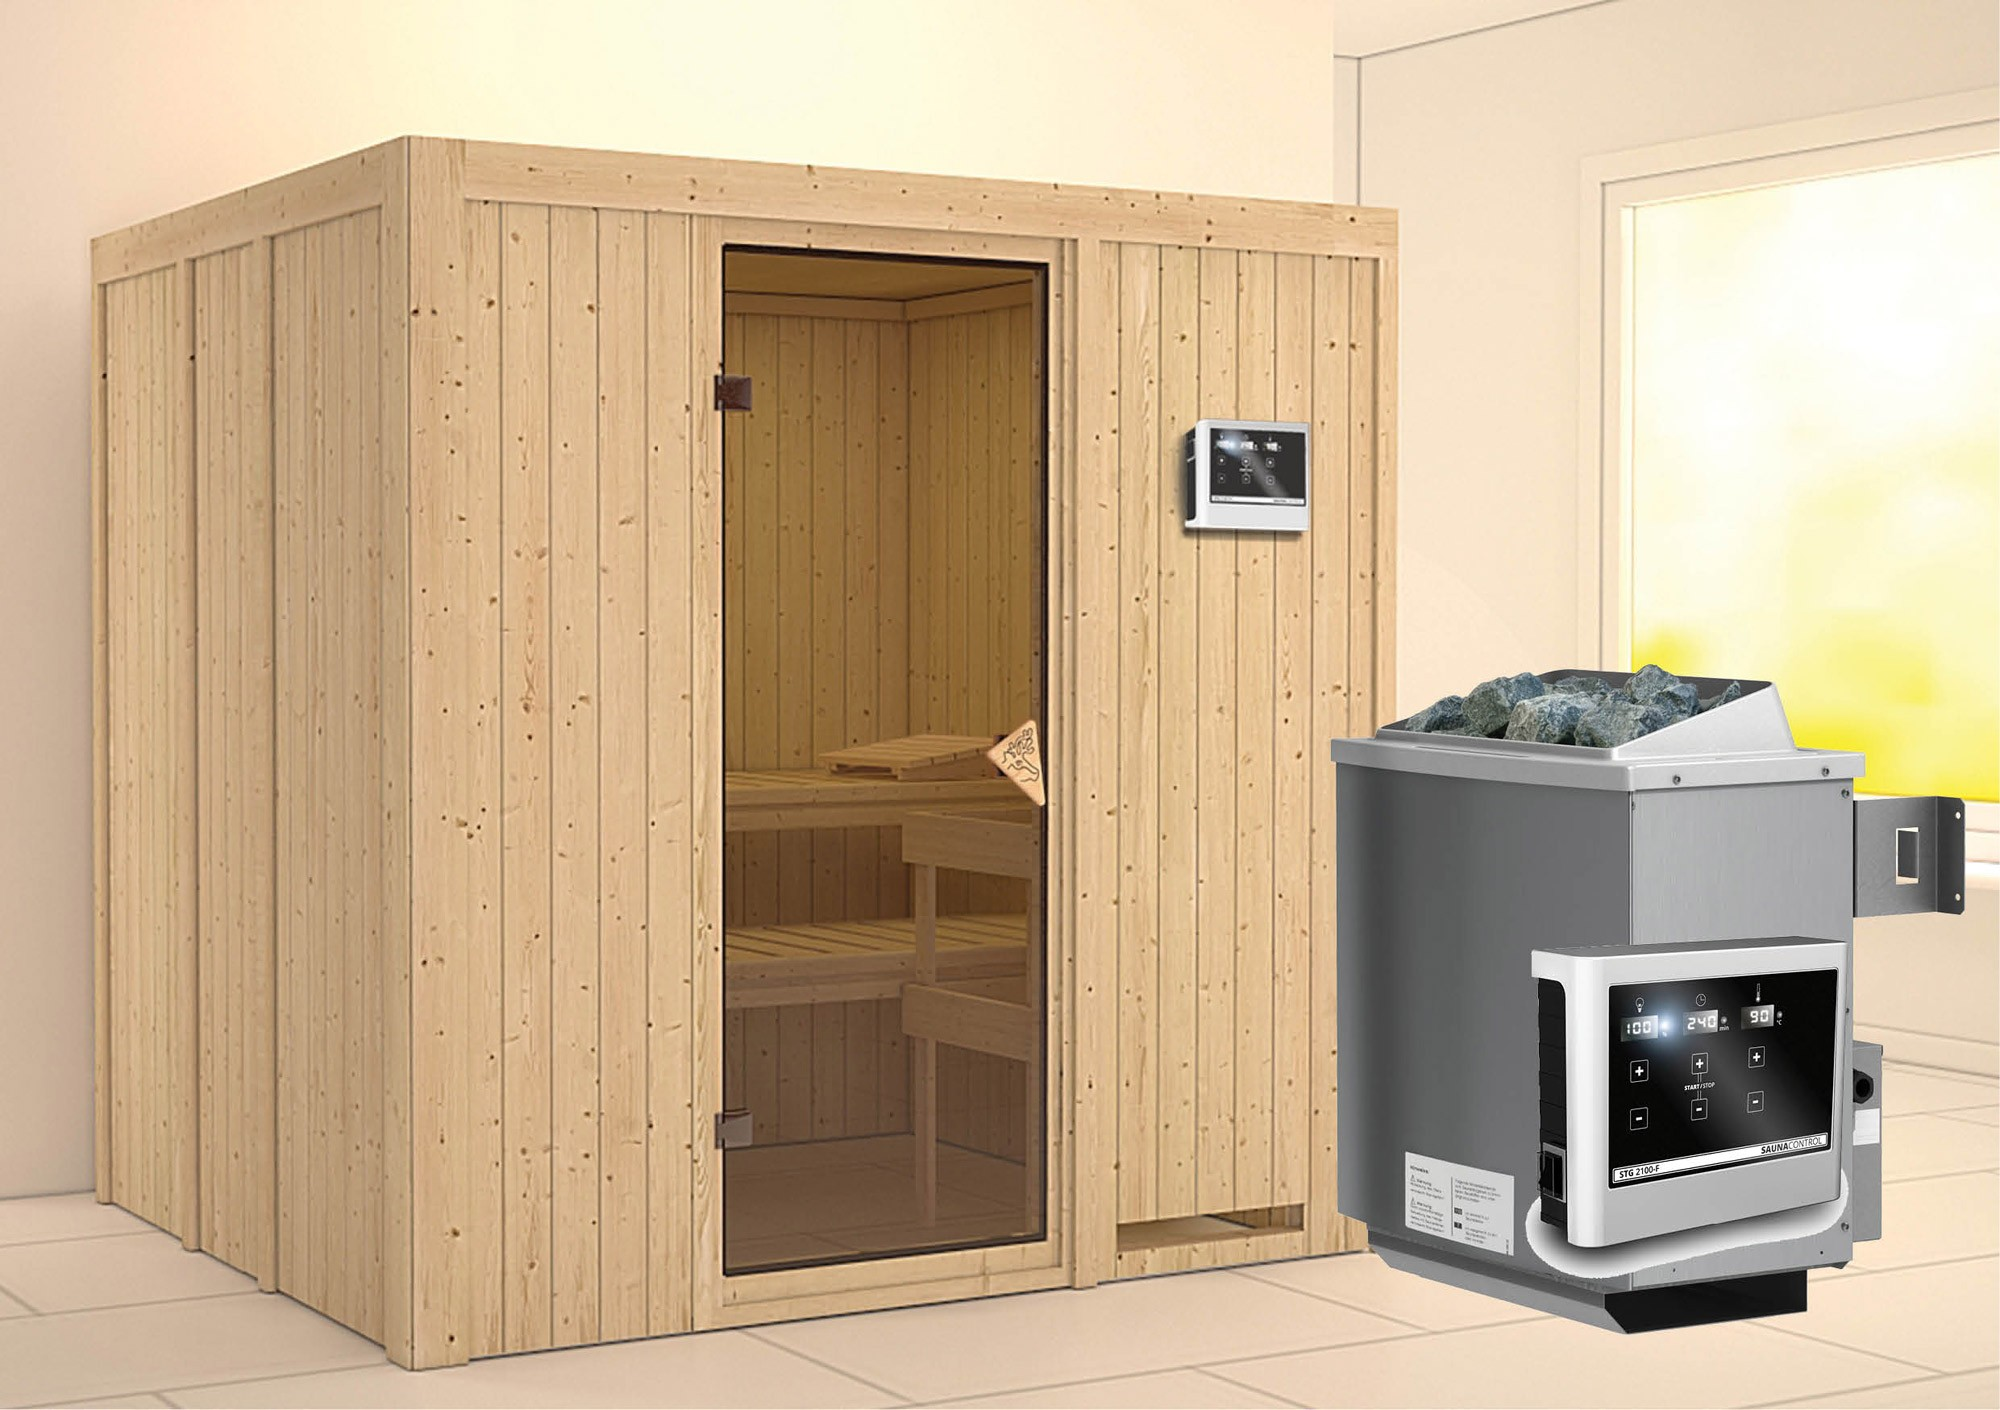 karibu sauna sodin 68mm mit ofen 9kw extern classic t r bei. Black Bedroom Furniture Sets. Home Design Ideas